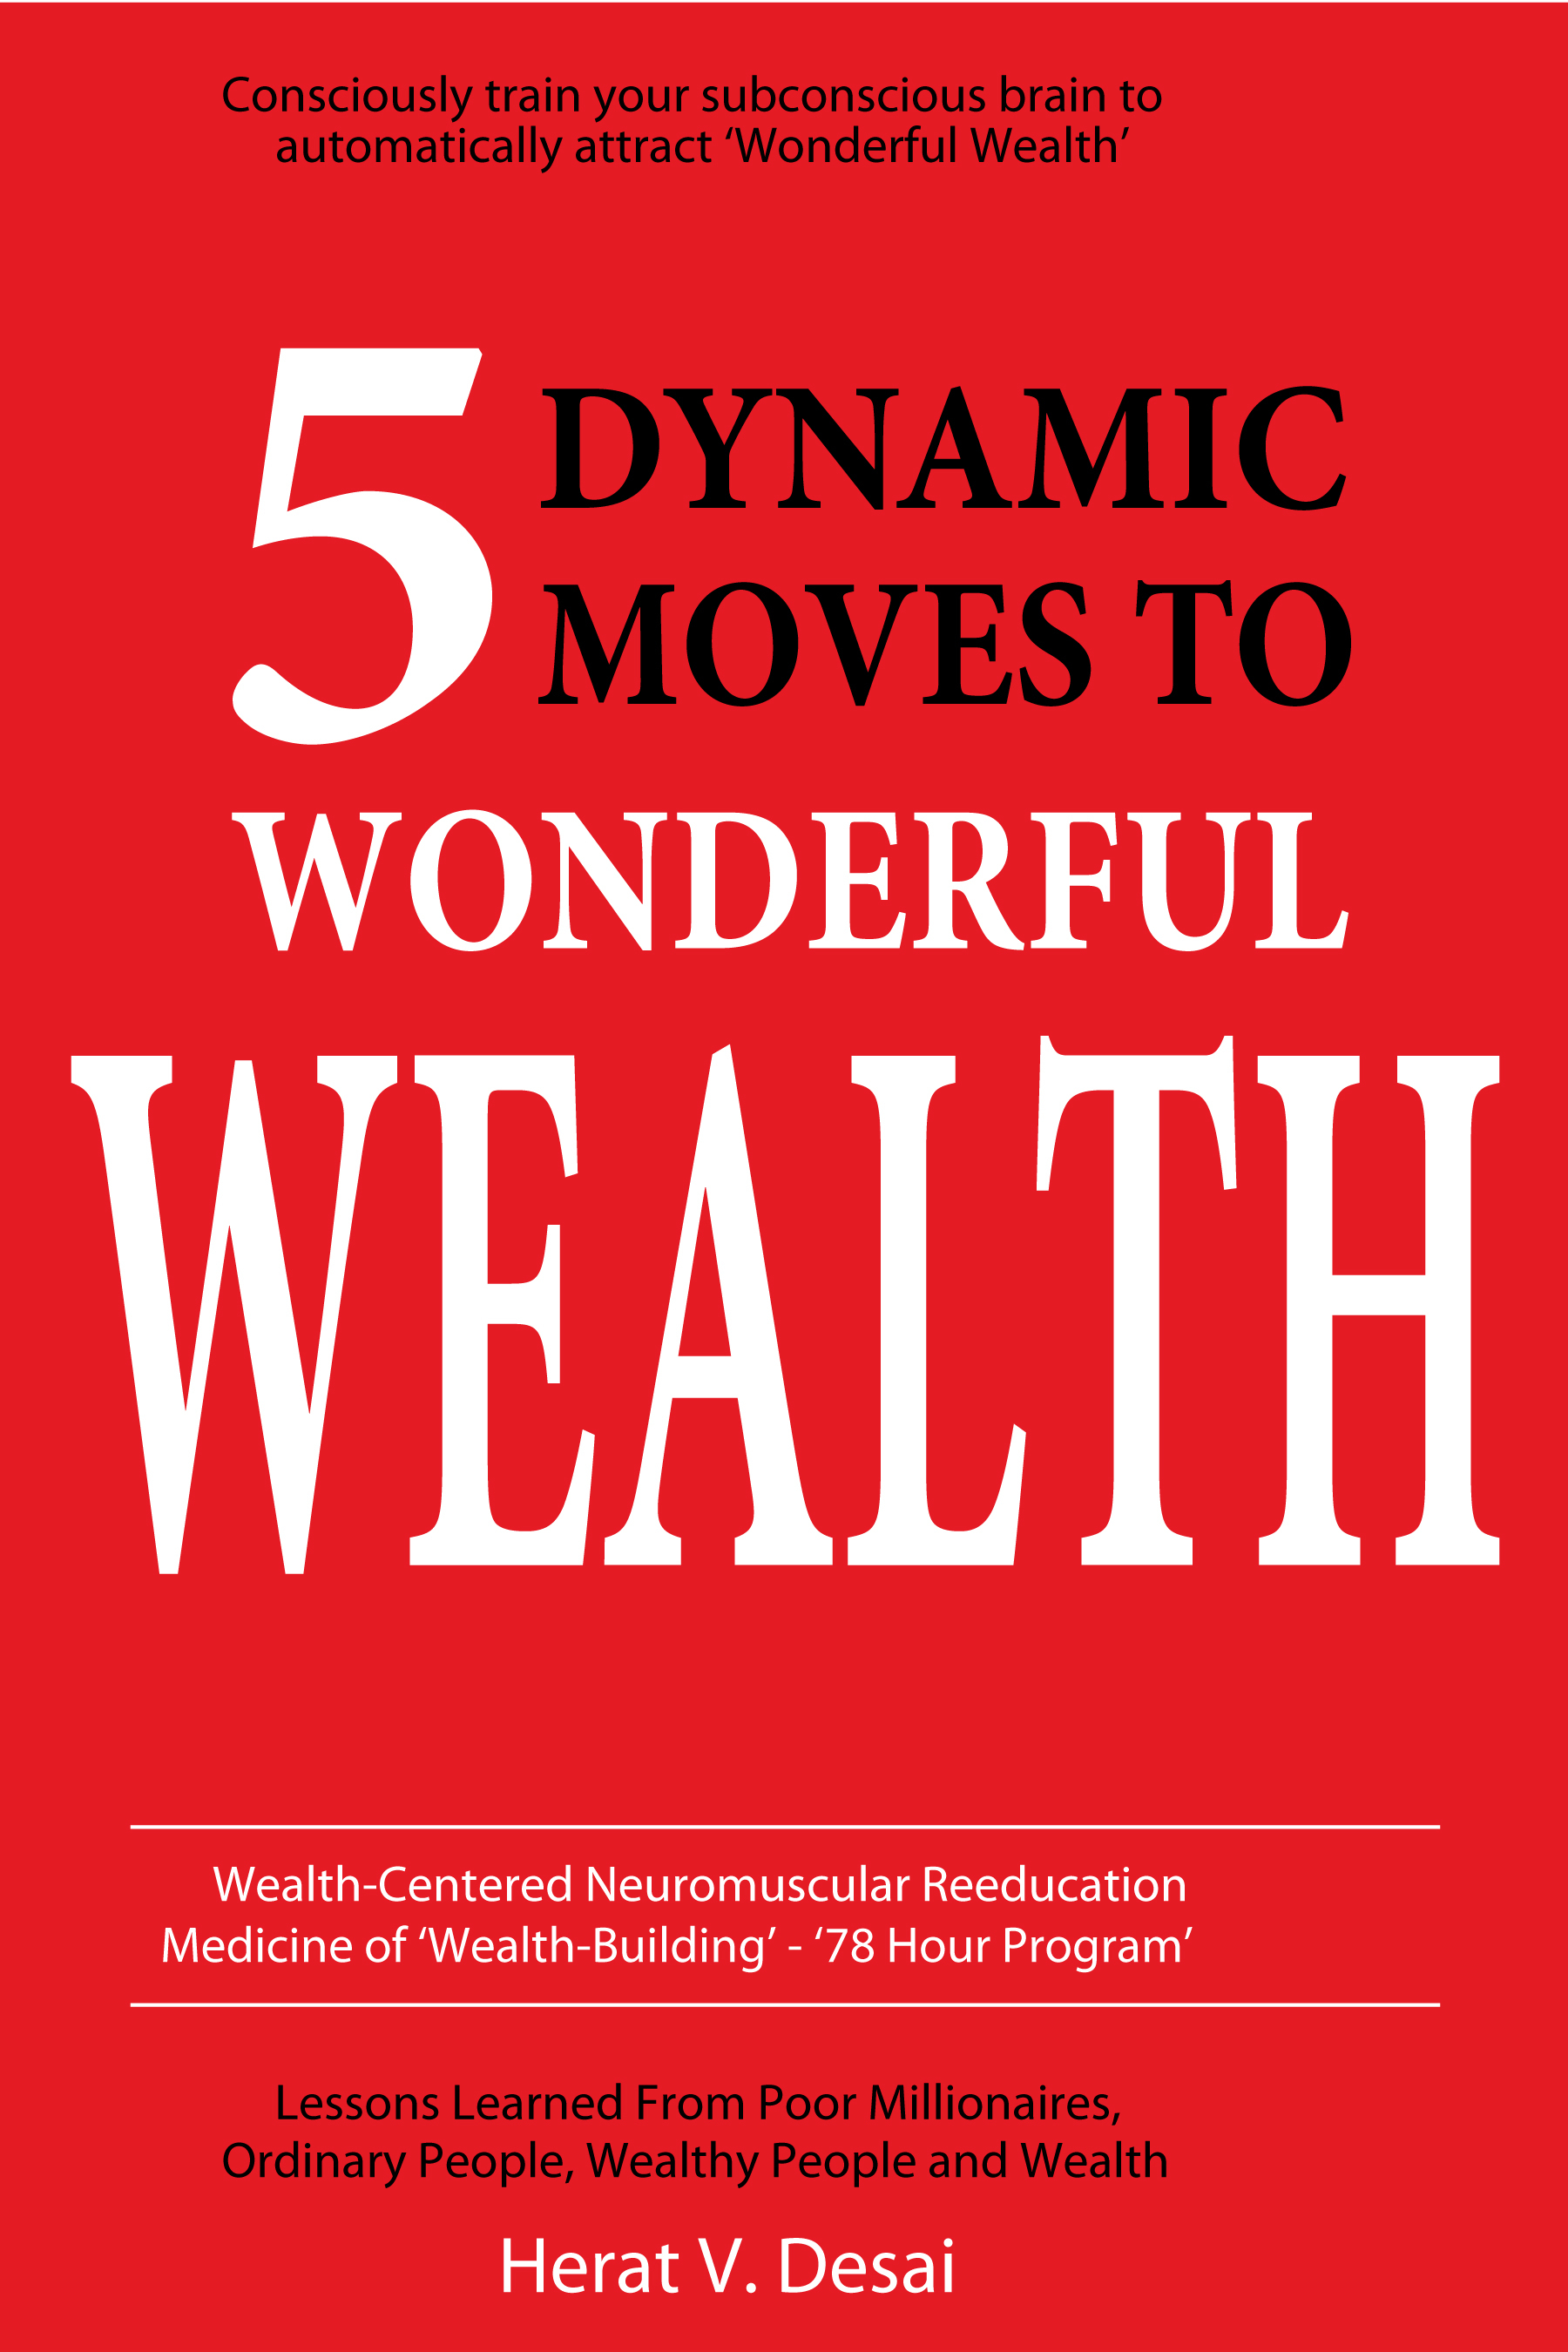 5 Dynamic Moves to Wonderful Wealth